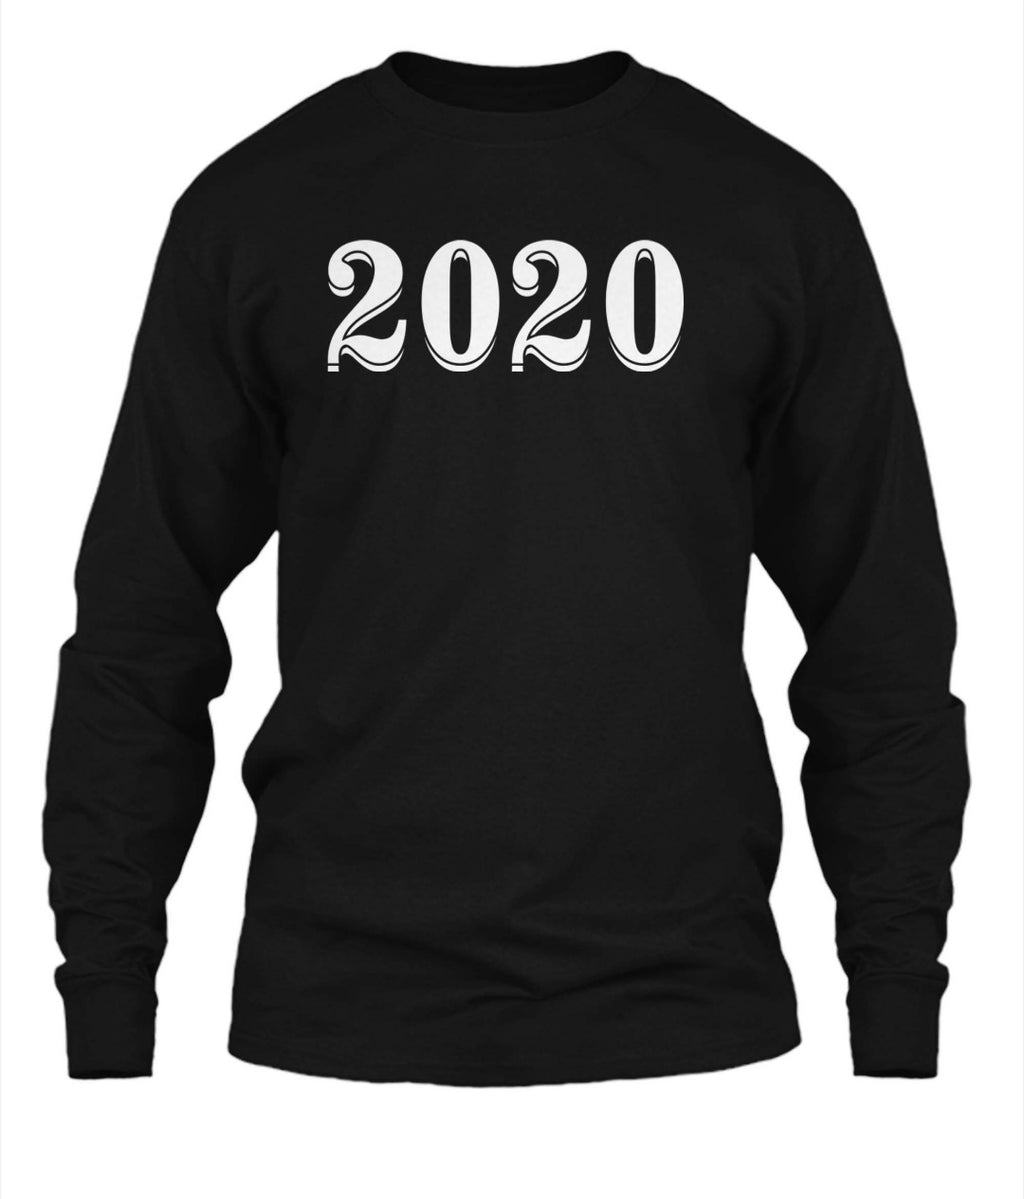 2020 - Long Sleeve (Front/Back)